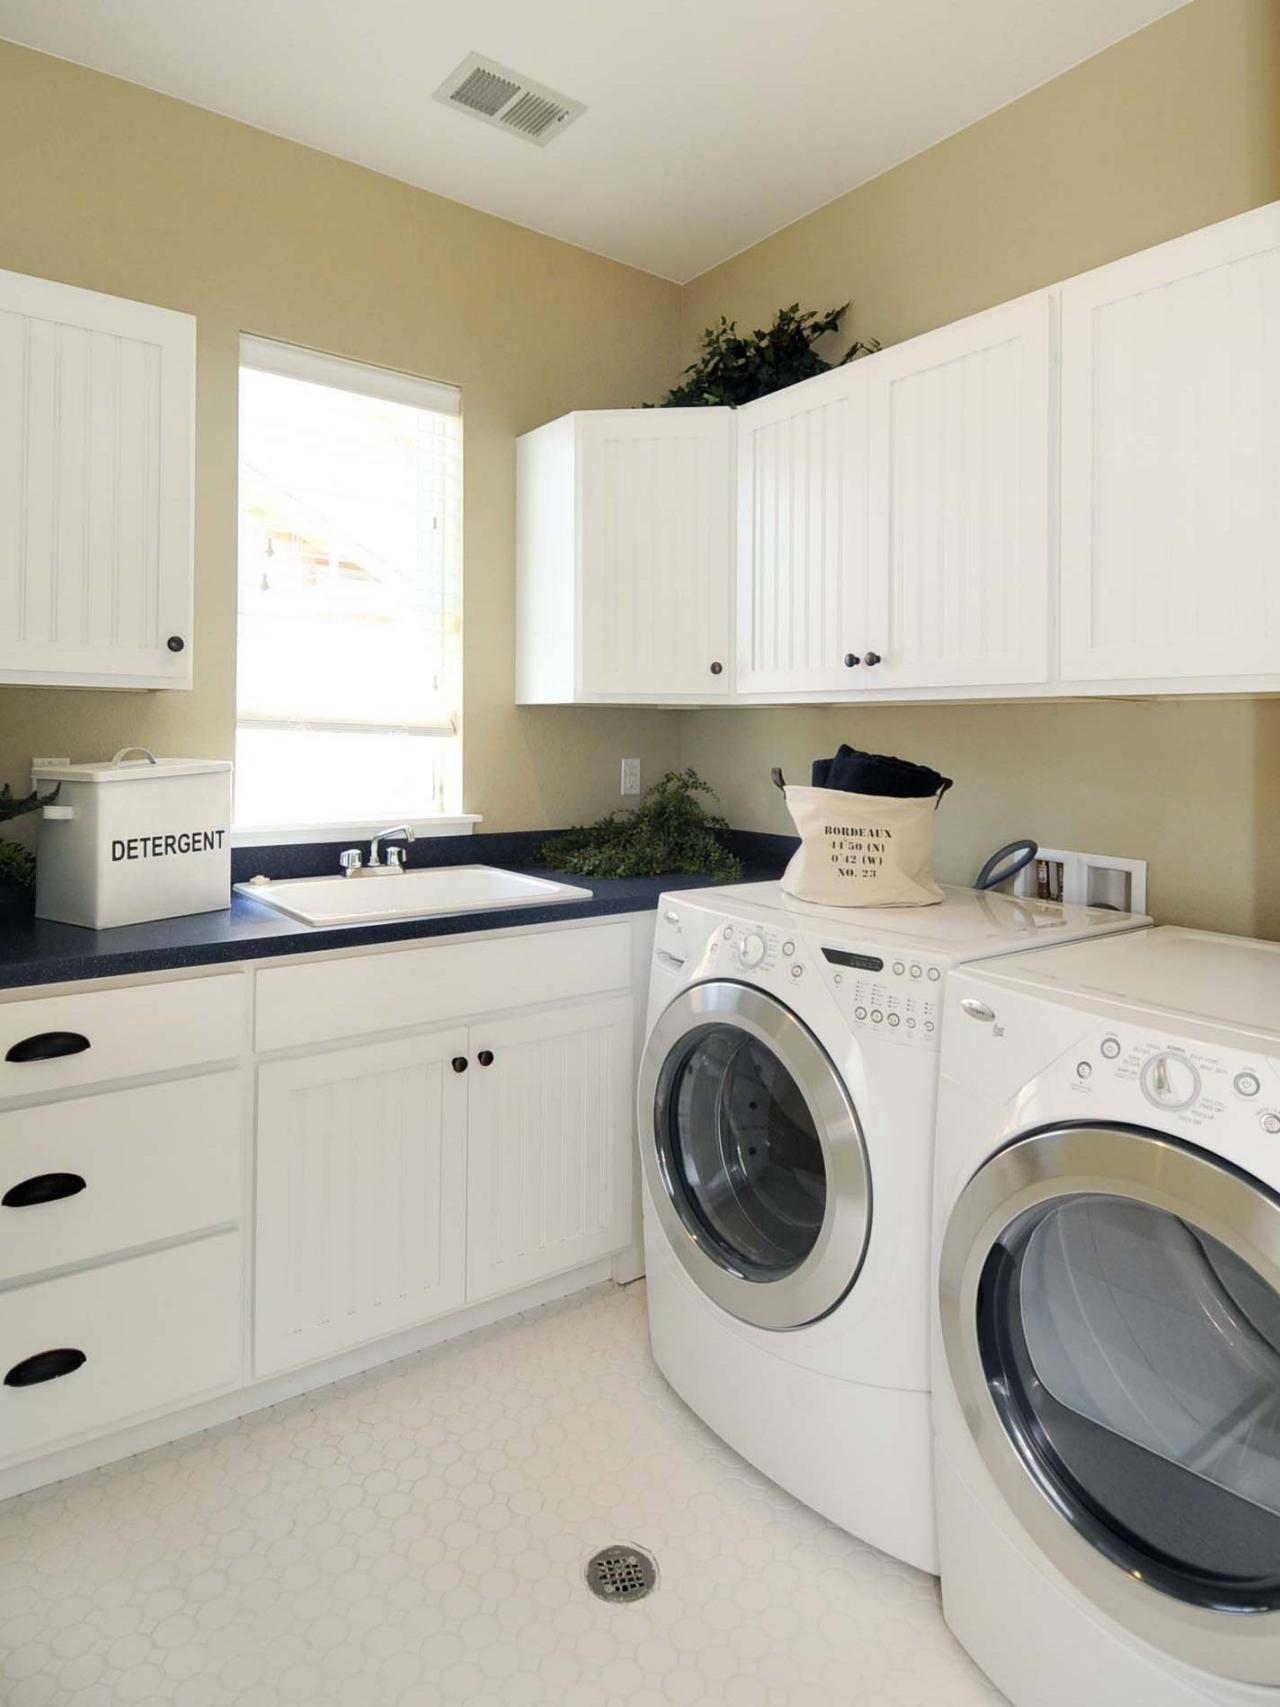 Beautiful and efficient laundry room designs decorating and design ideas for interior rooms hgtv - Laundry room designs small spaces set ...